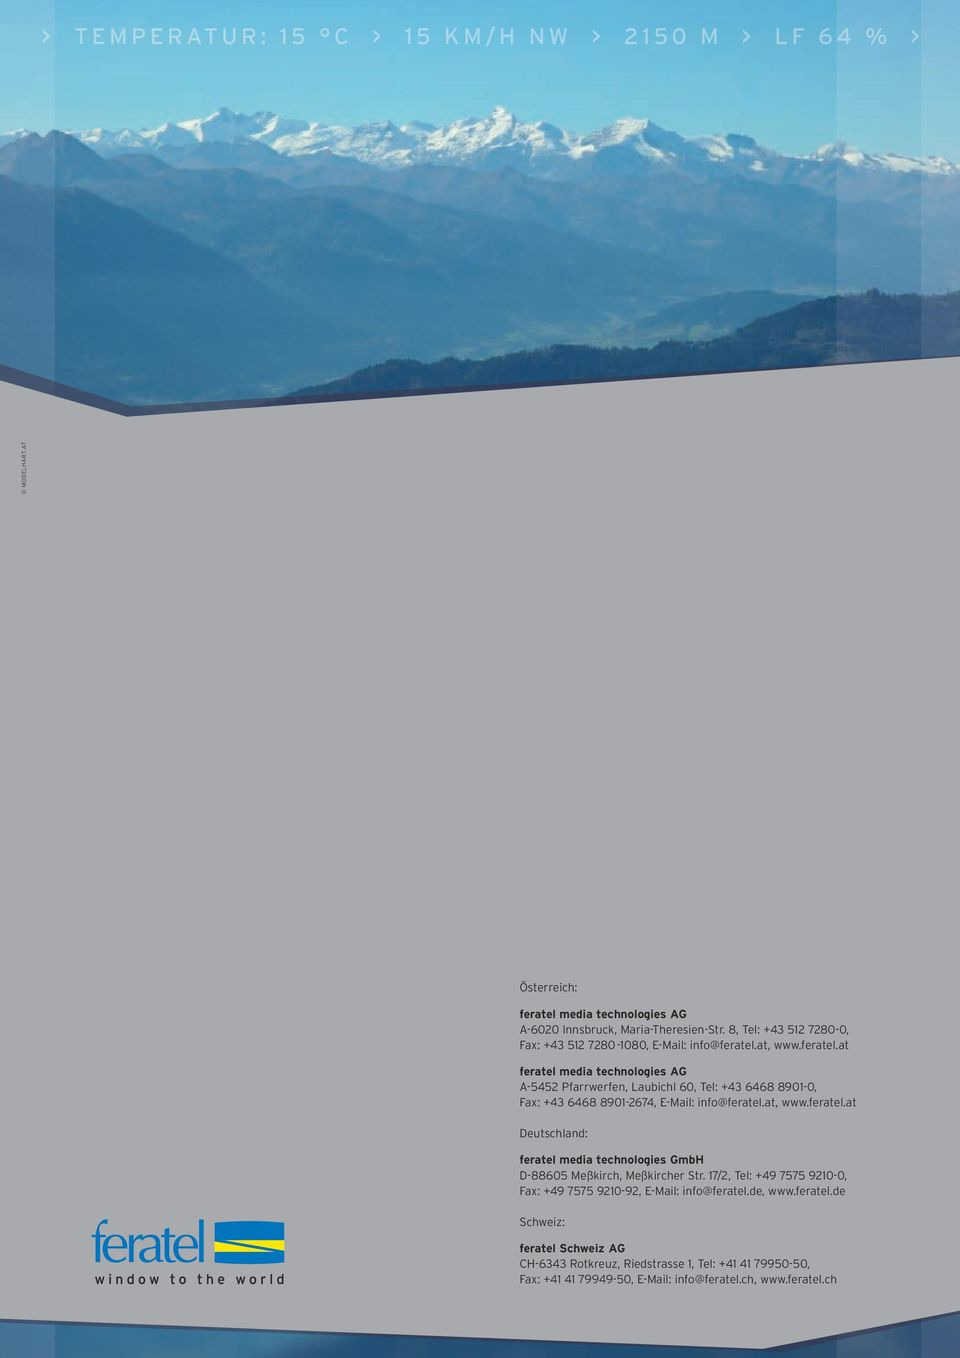 at, www.feratel.at feratel media technologies AG A-5452 Pfarrwerfen, Laubichl 60, Tel: +43 6468 8901-0, Fax: +43 6468 8901-2674, E-Mail: info@feratel.at, www.feratel.at Deutschland: feratel media technologies GmbH D-88605 Meßkirch, Meßkircher Str.